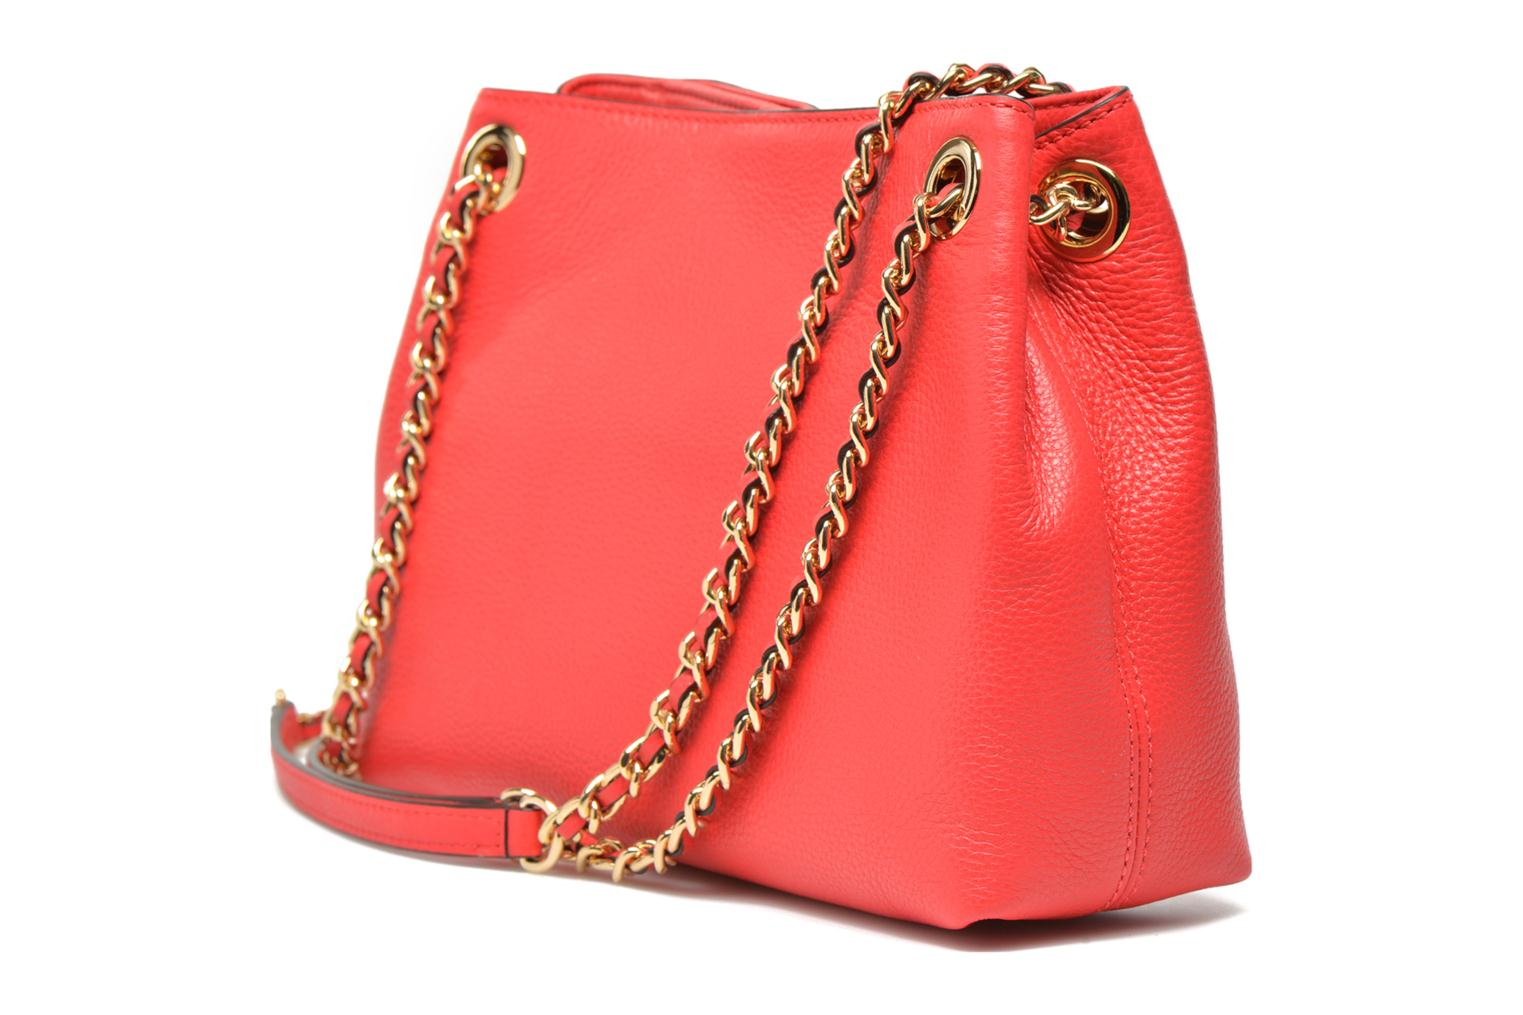 JET SET CHAIN ITEM MD CHAIN MESSENGER SOFT VENUS CORAL REEF